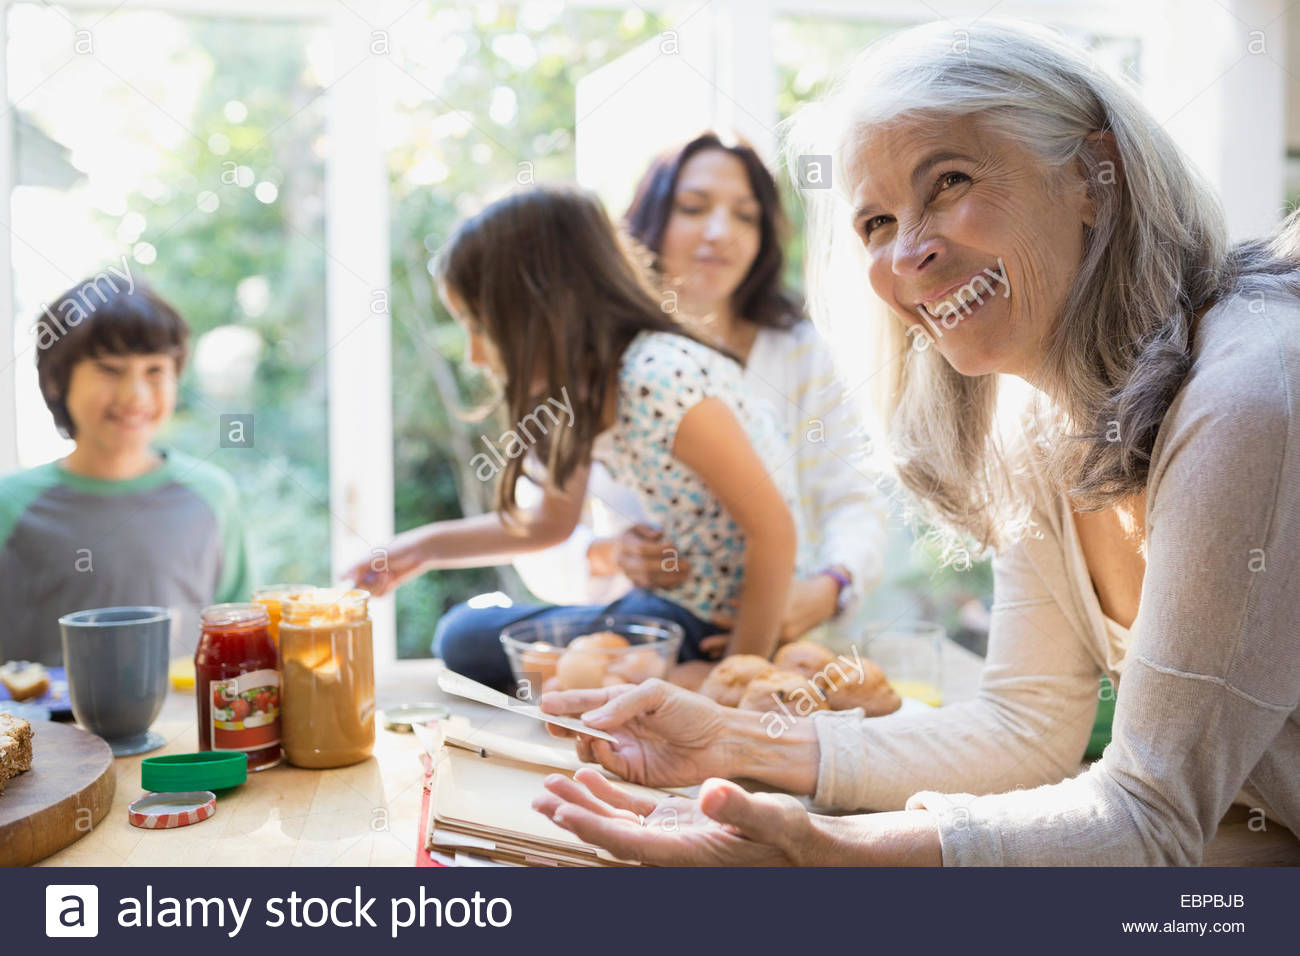 Multi-generation family in kitchen Photo Stock